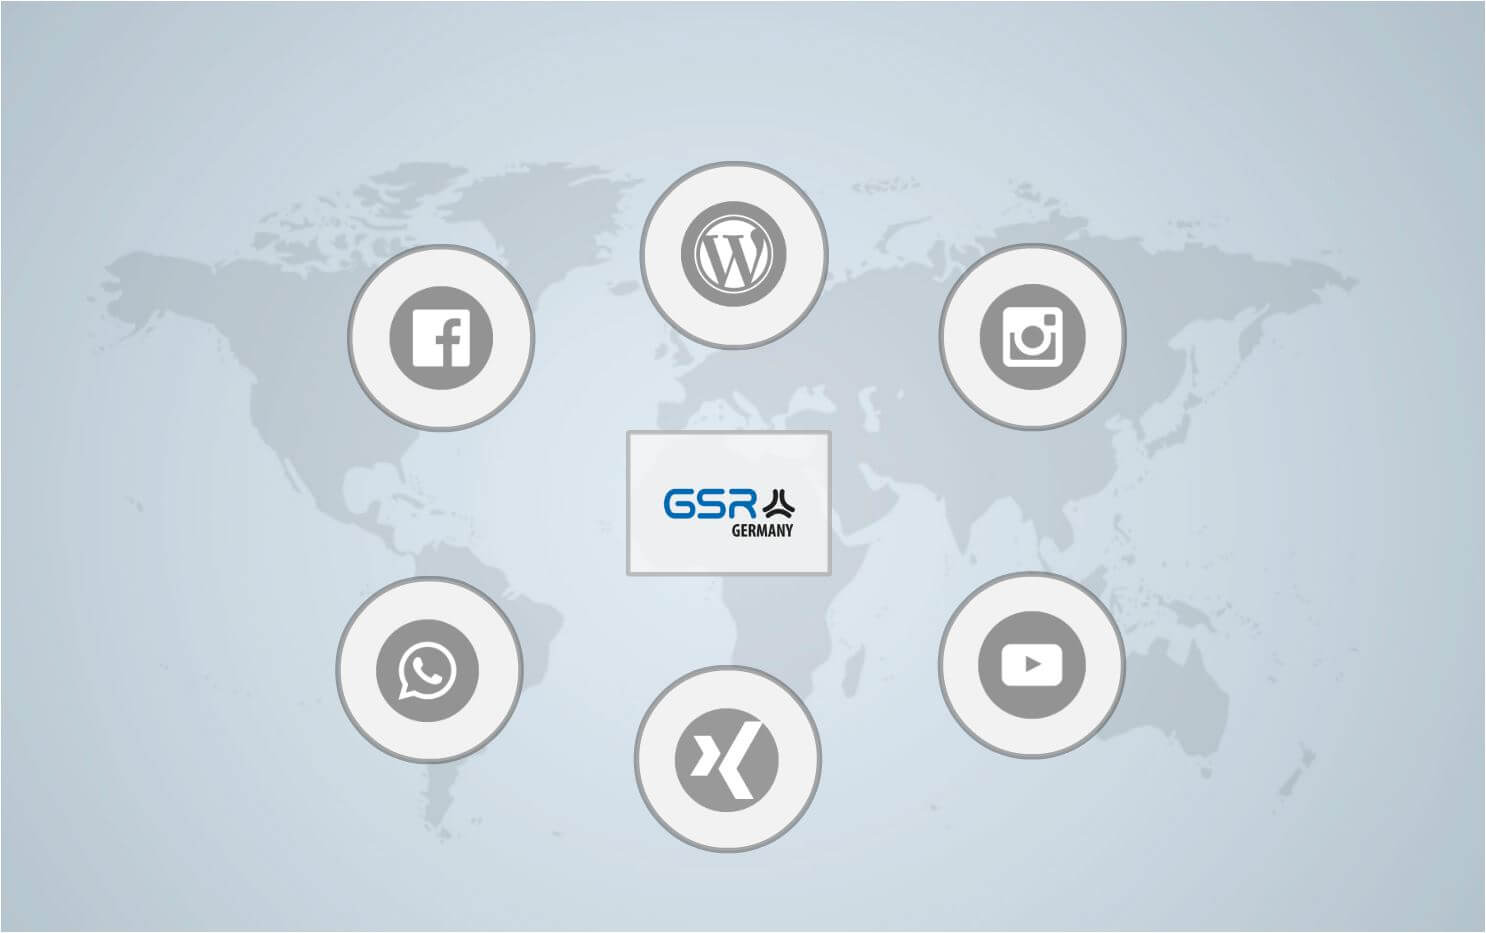 GSR Gustav Stursberg Social Media Networks Übersicht: Facebook, WordPress, Instagram, Youtube, Xing und WhatsApp